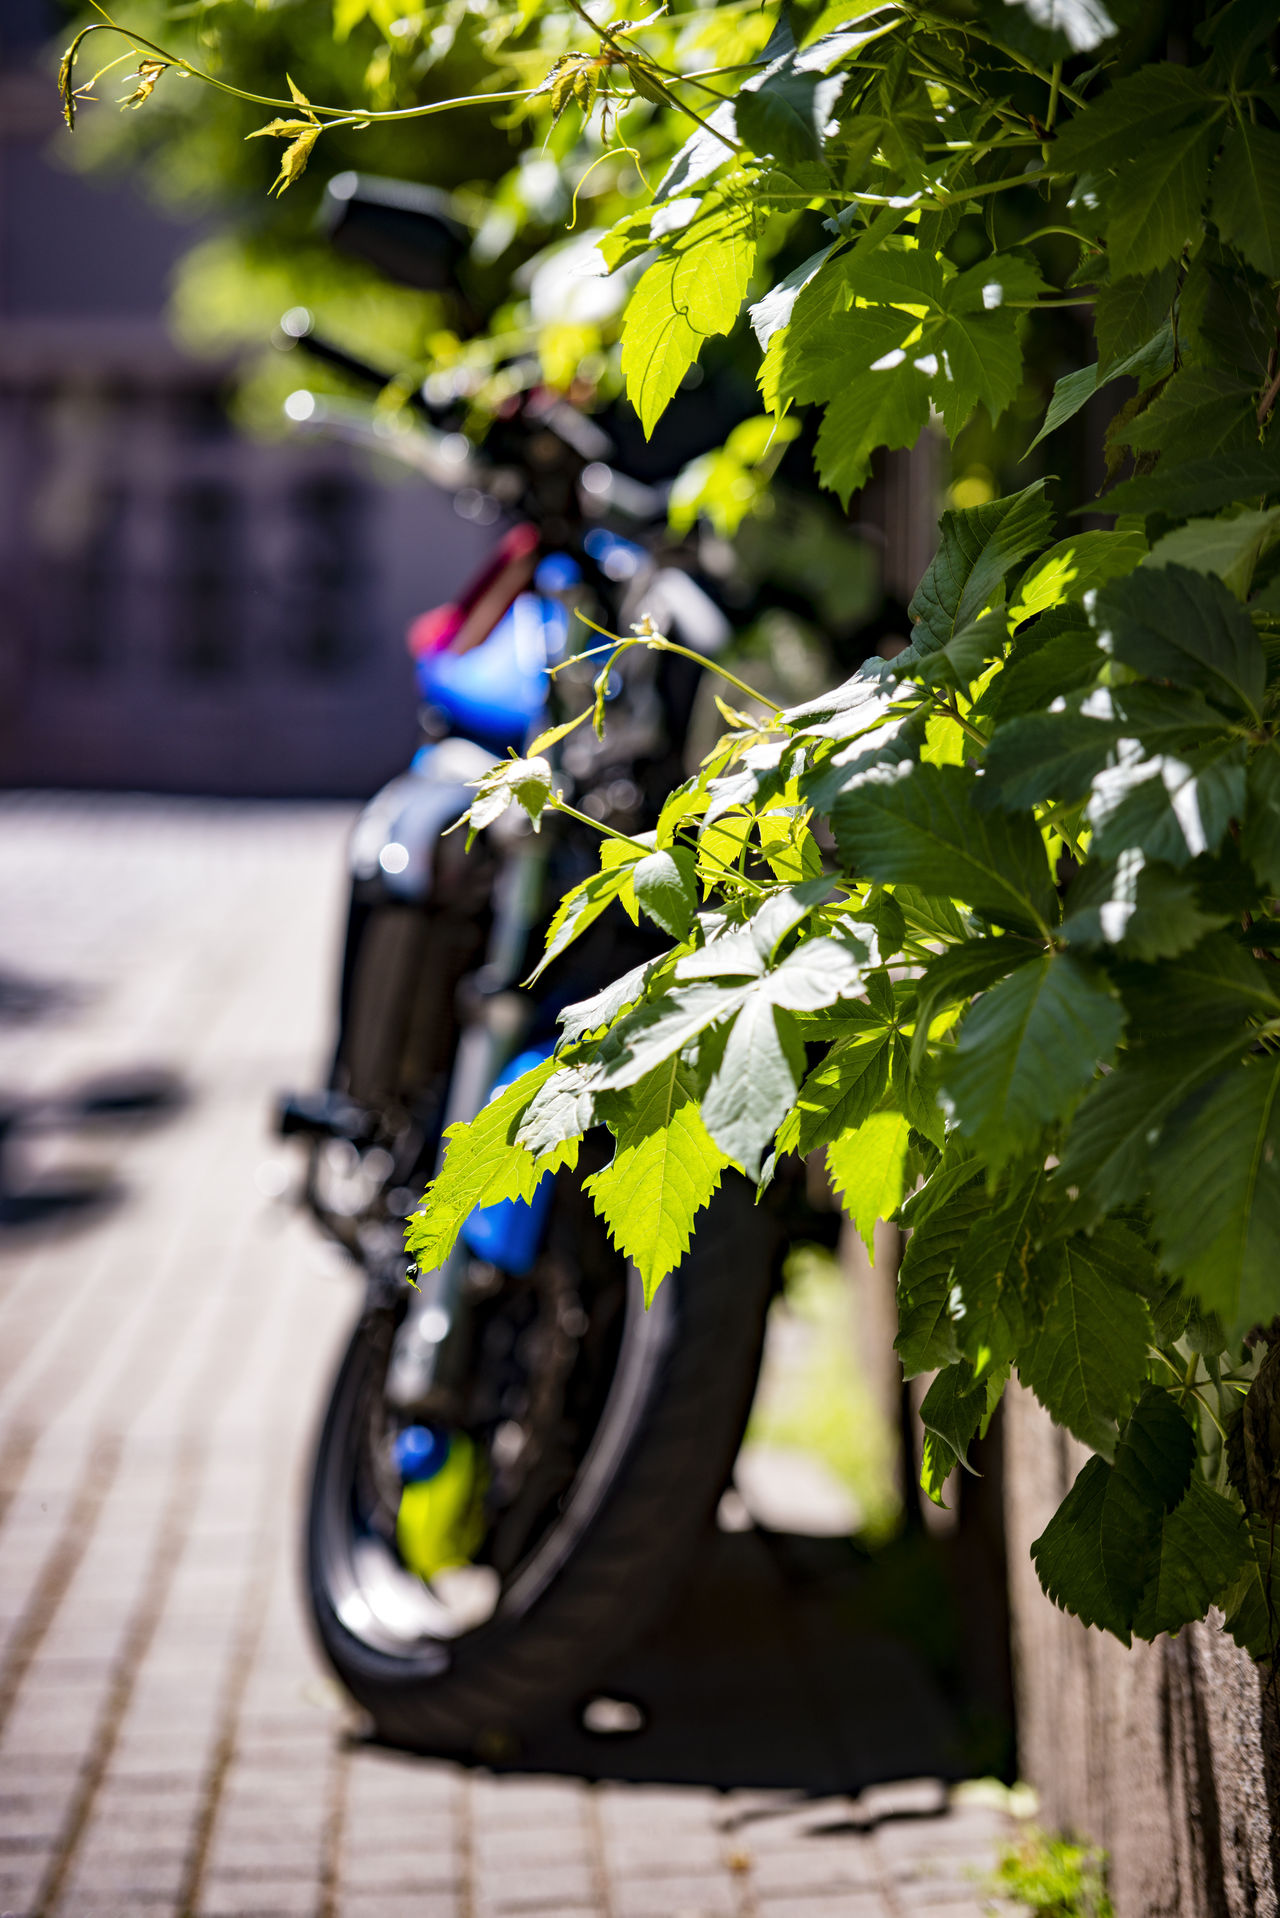 Bicycle City Close-up Cycling Day Flower Freshness Growth Latvia Nature No People Outdoors Riga Street Sunlight